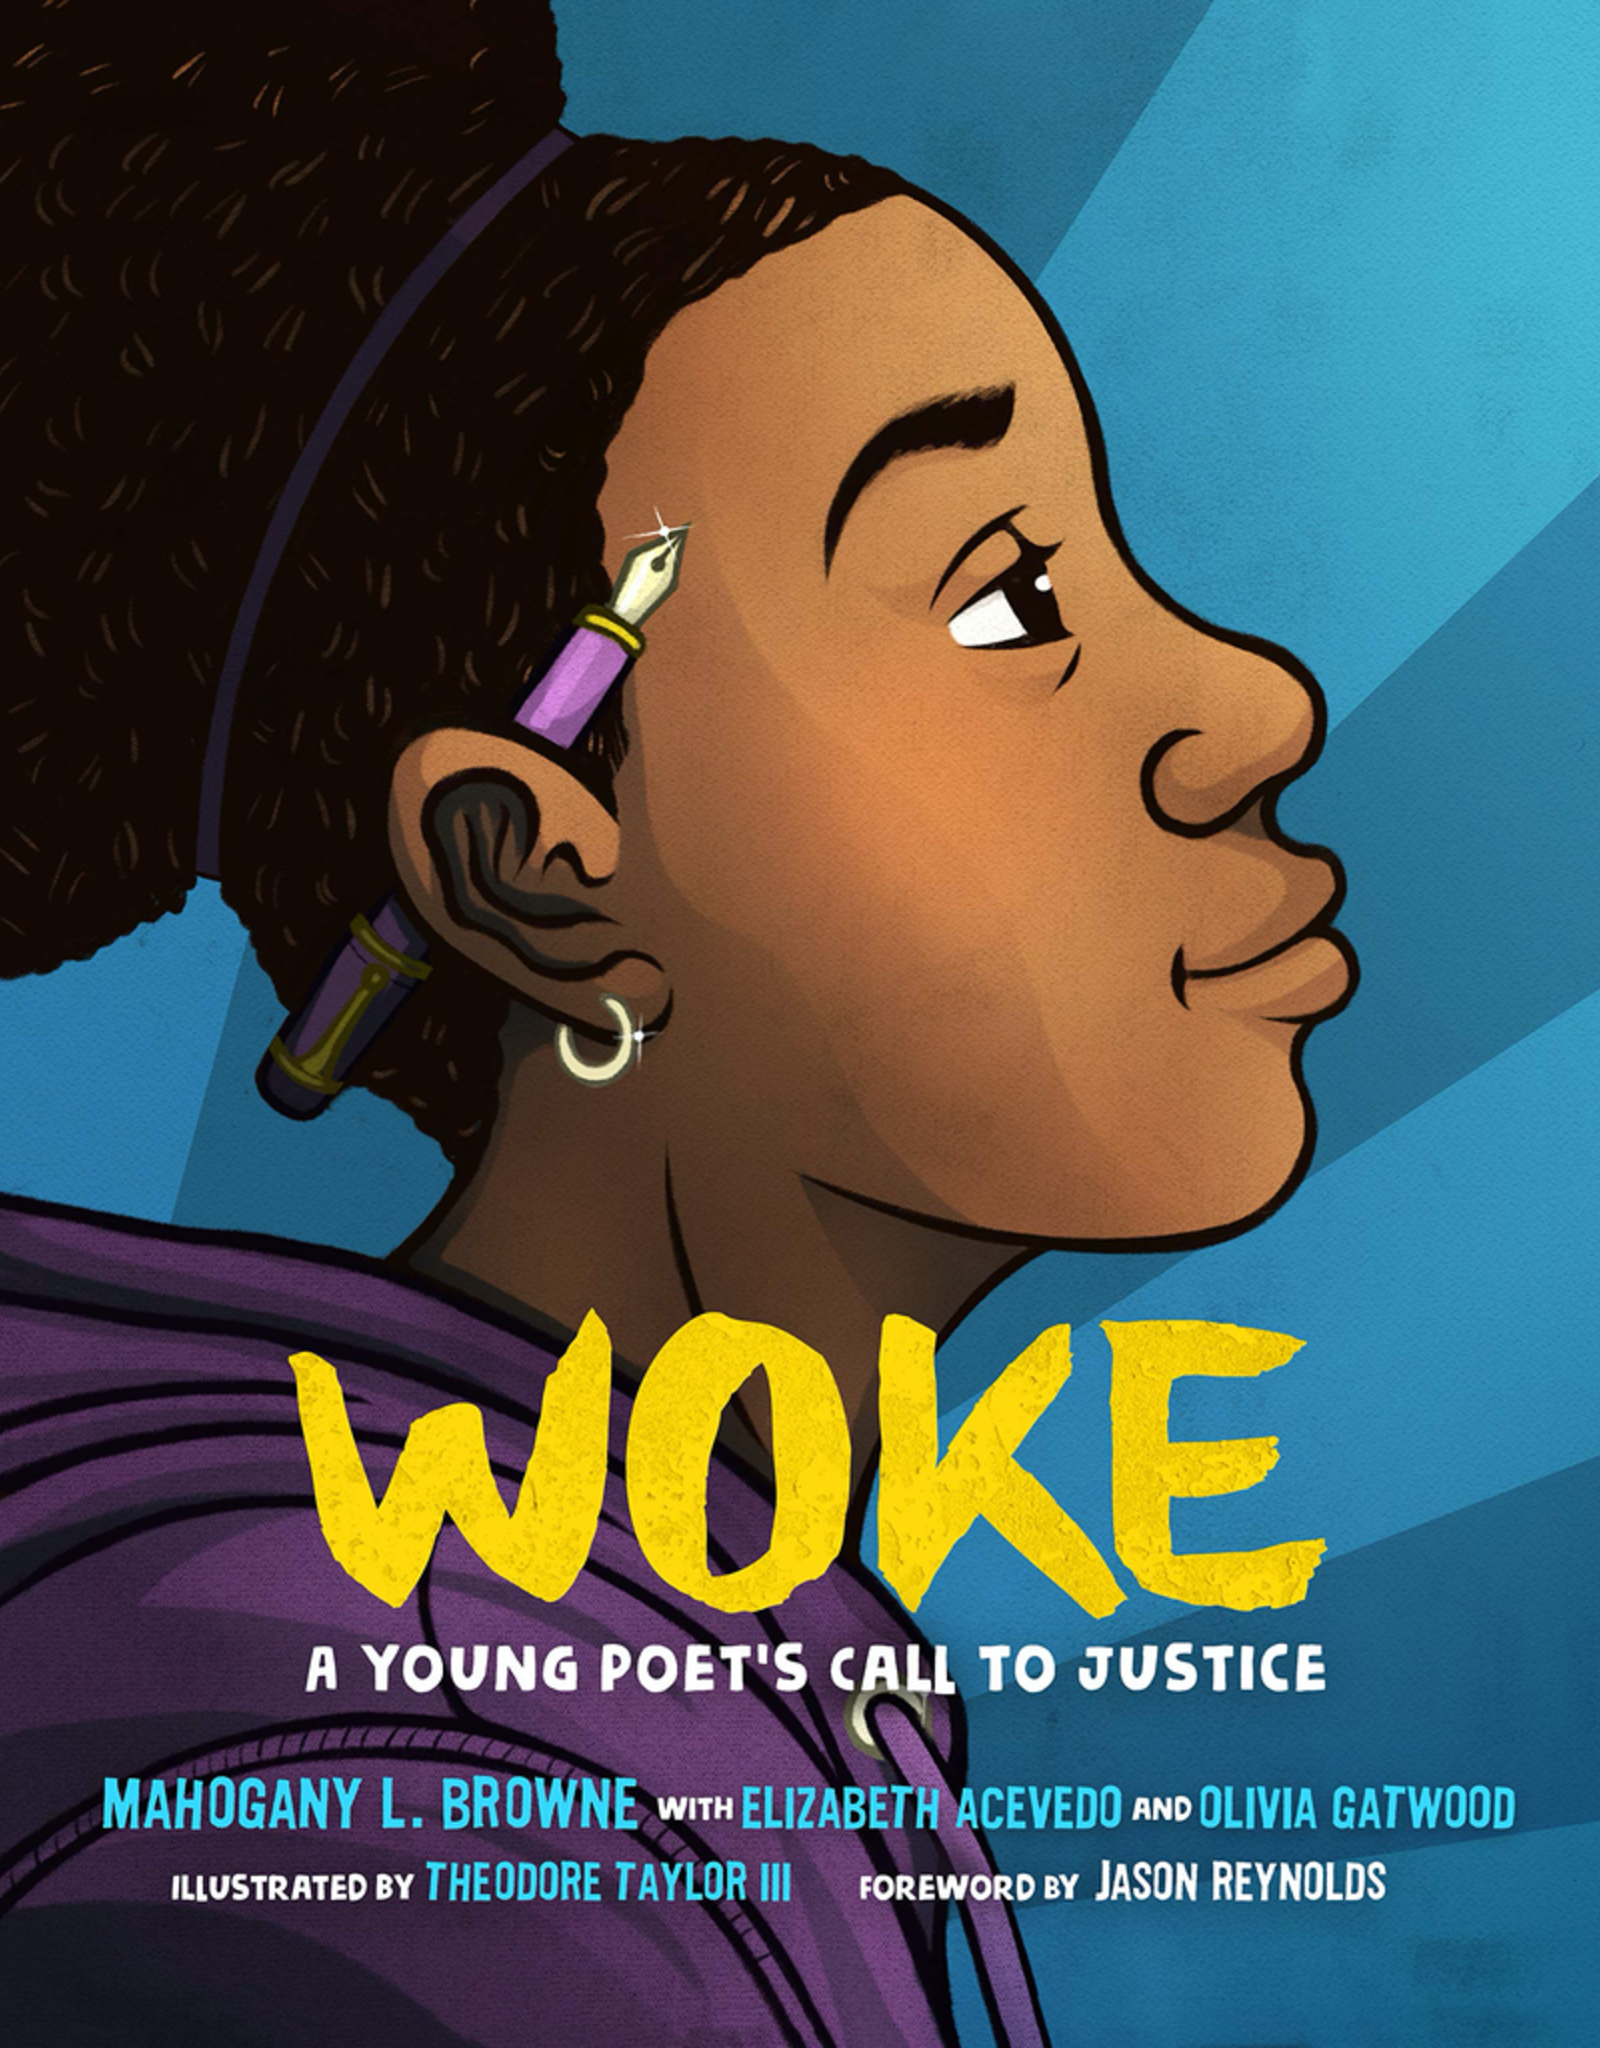 Woke A Young Poet's Call To Justice